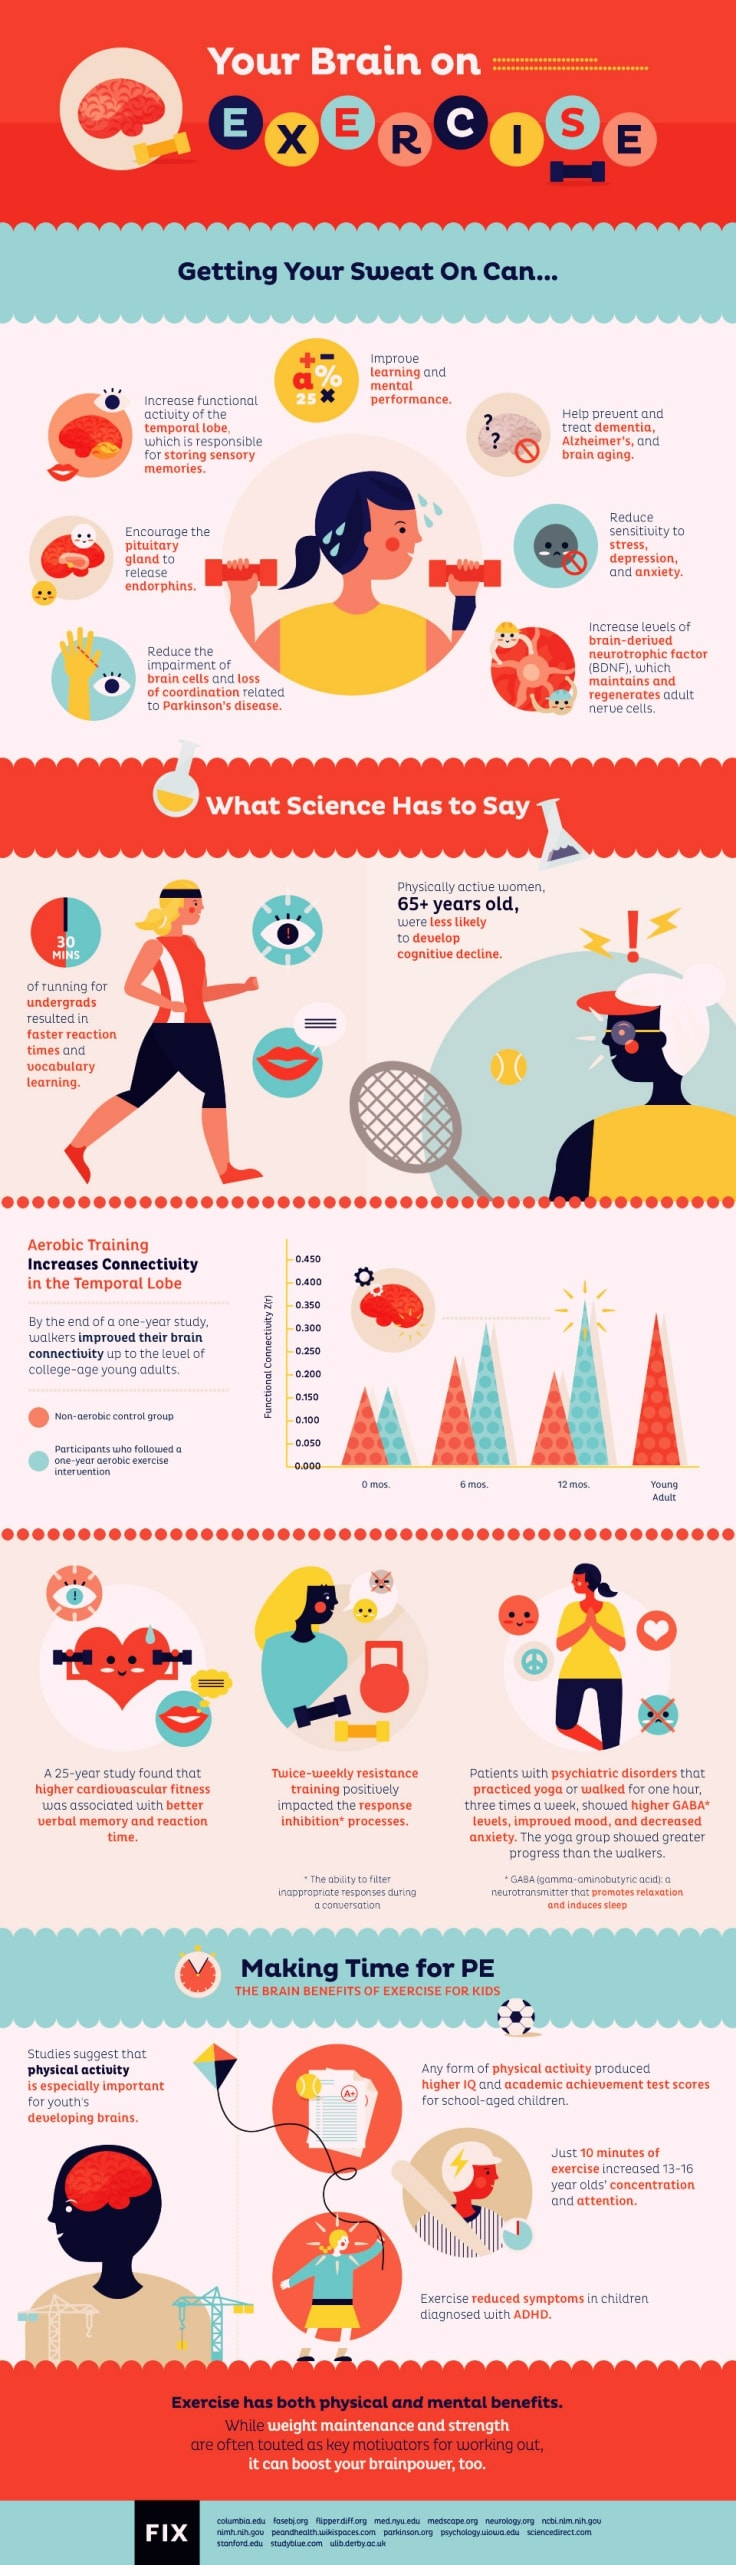 How Regular Exercise Can Improve Brain Health Infographic